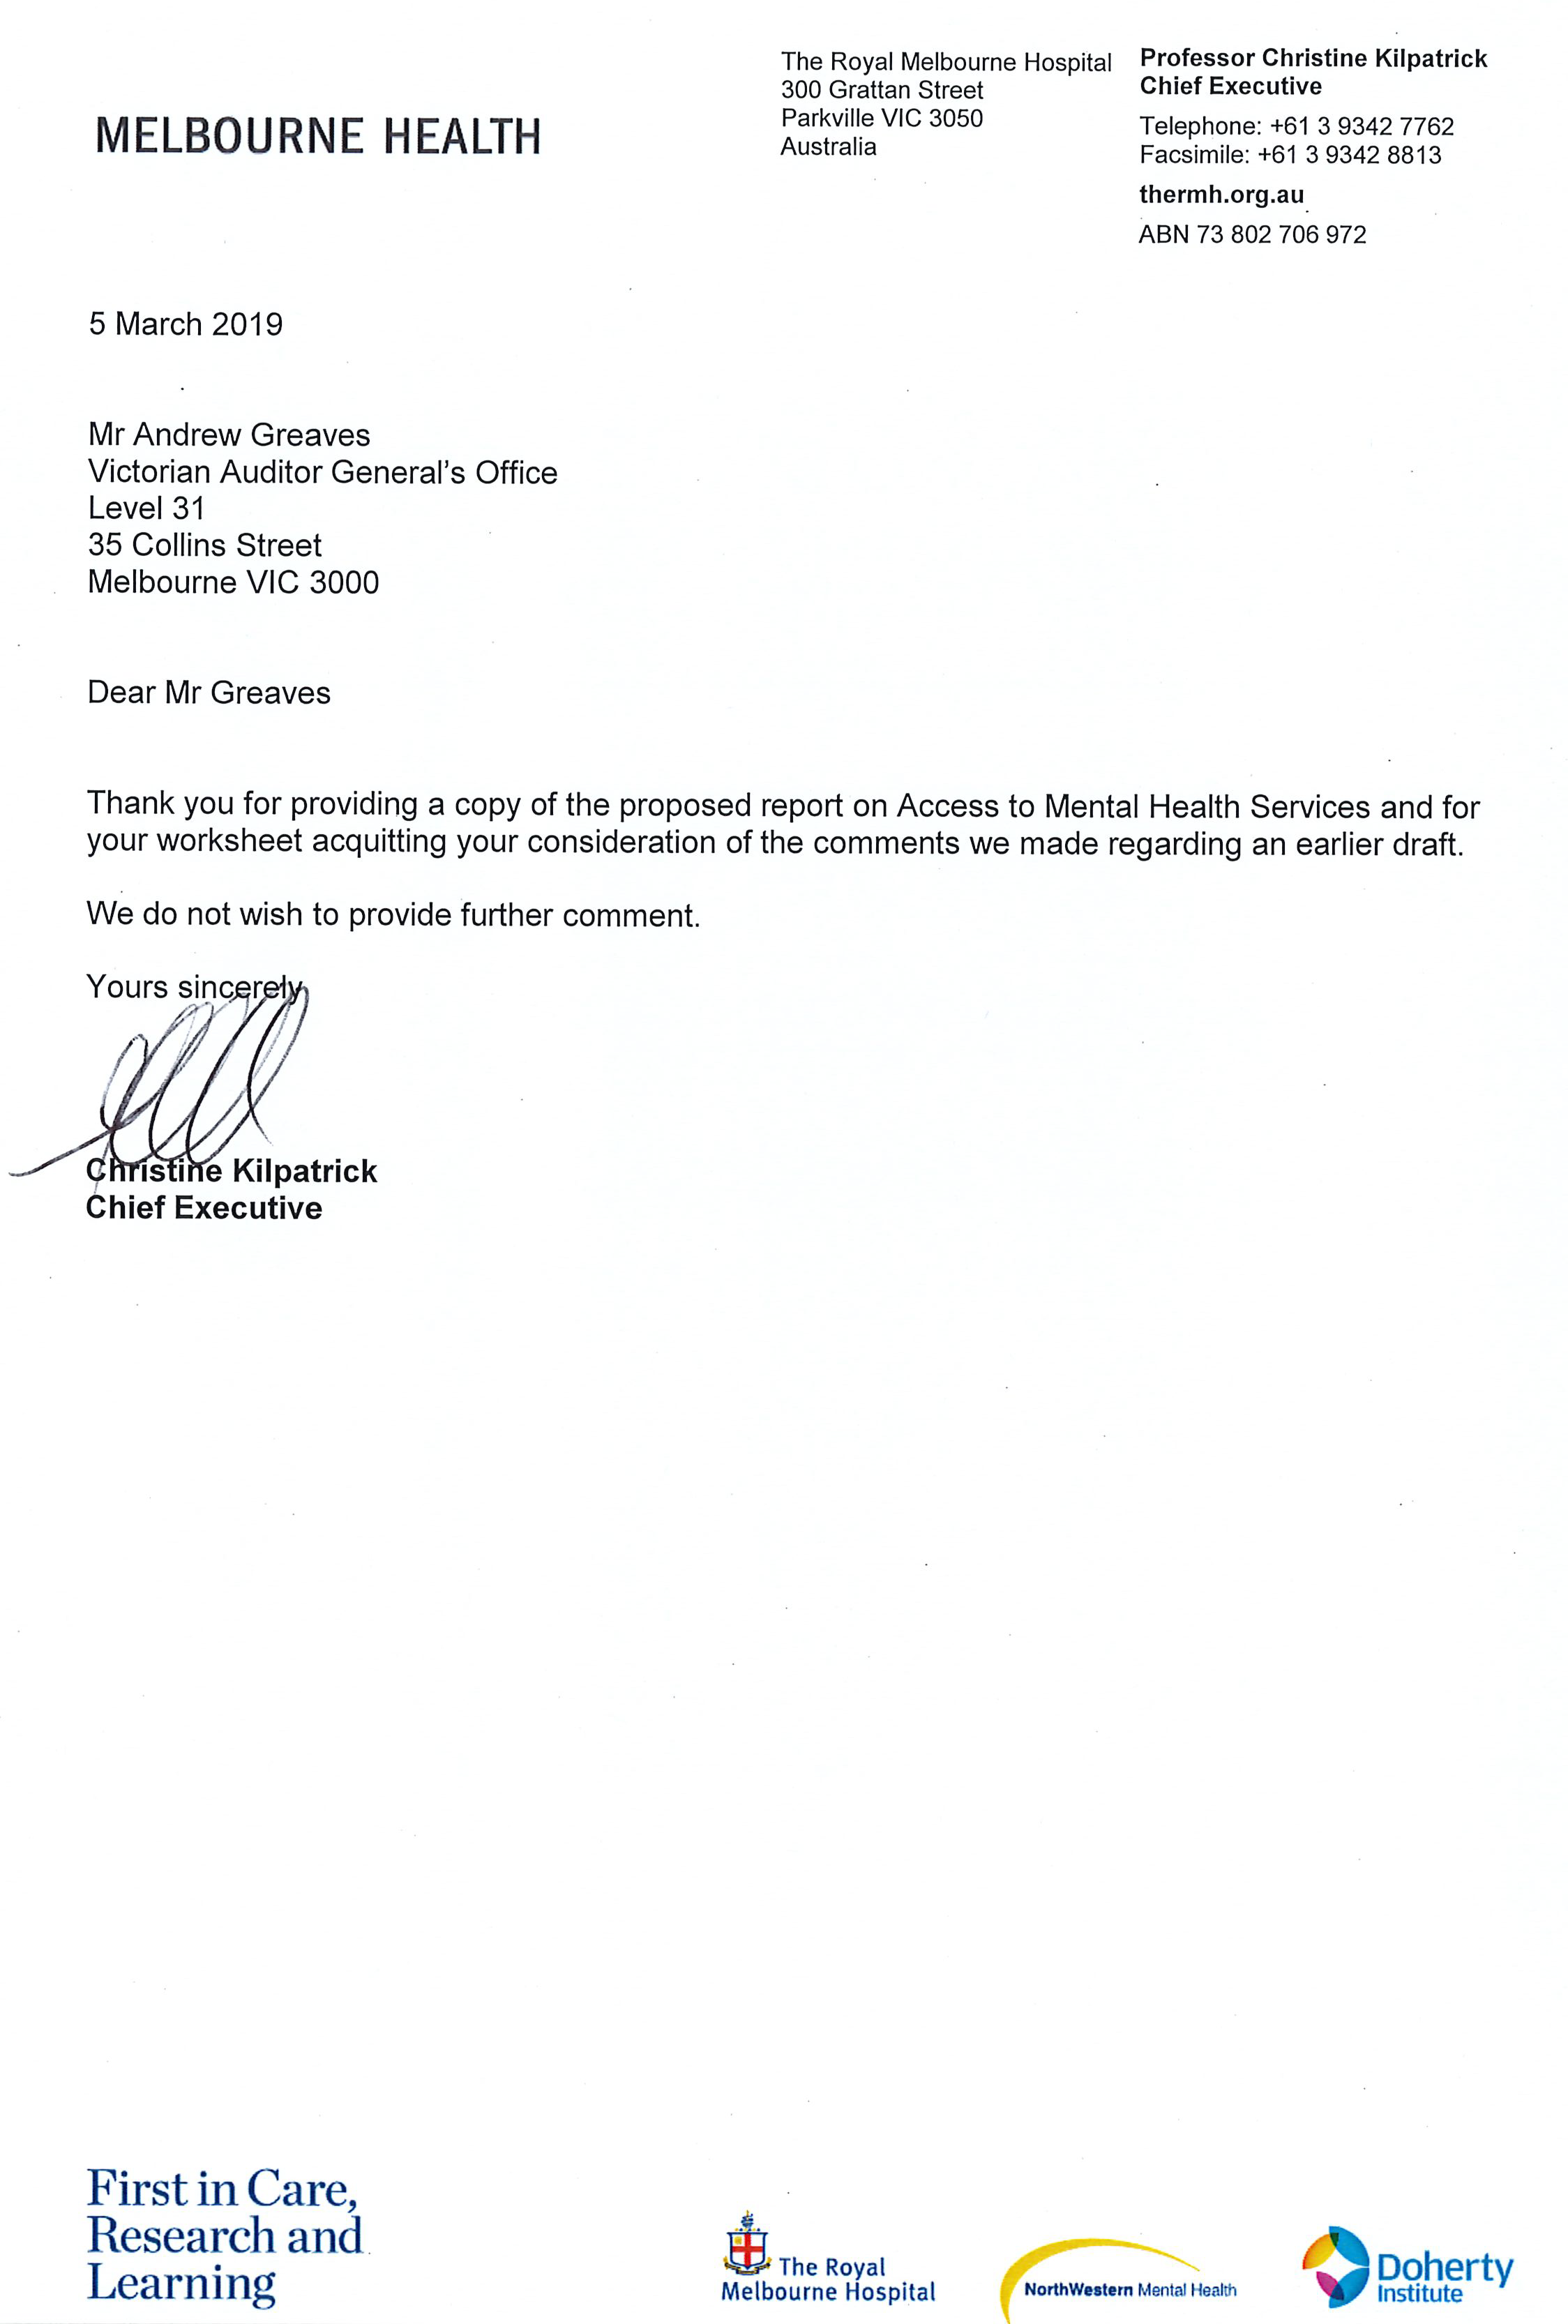 Response provided by the Chief Executive, Melbourne Health